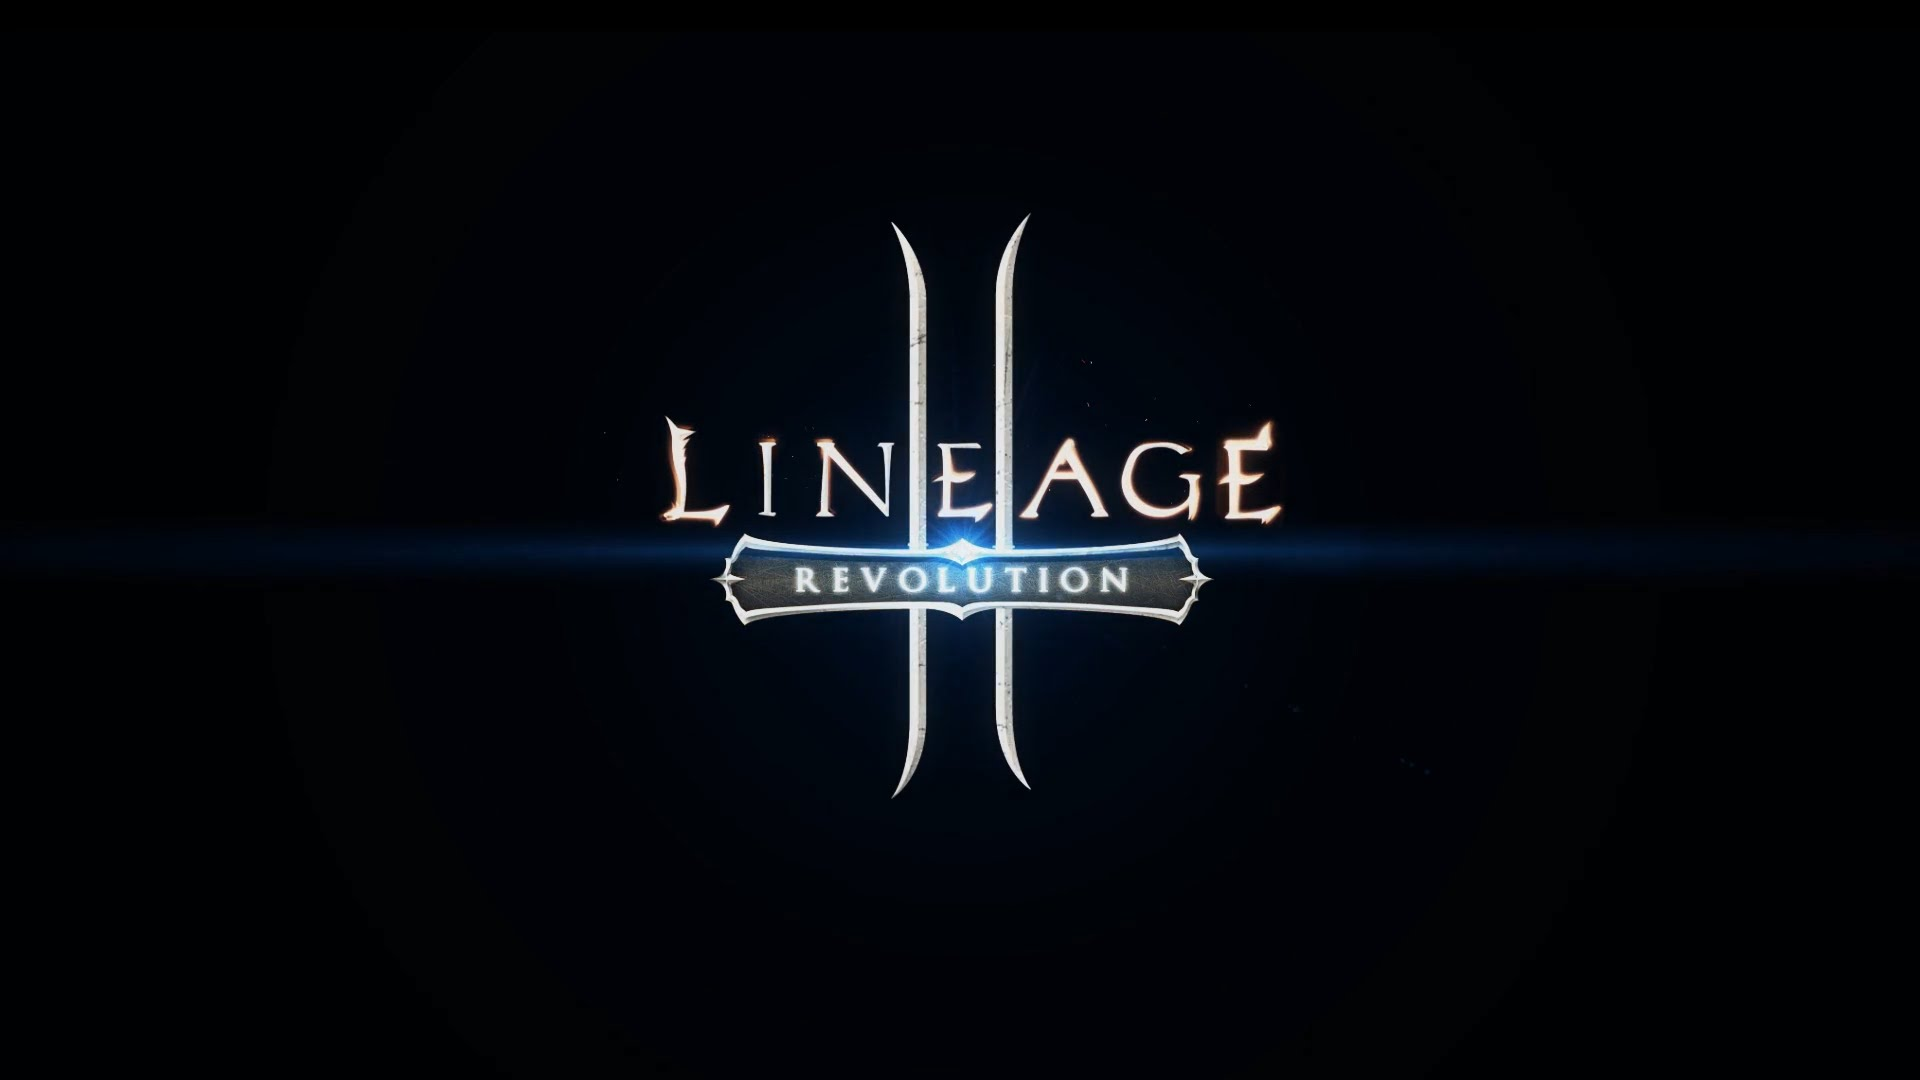 Lineage 2 SpellHowler Class Logo photo - 1